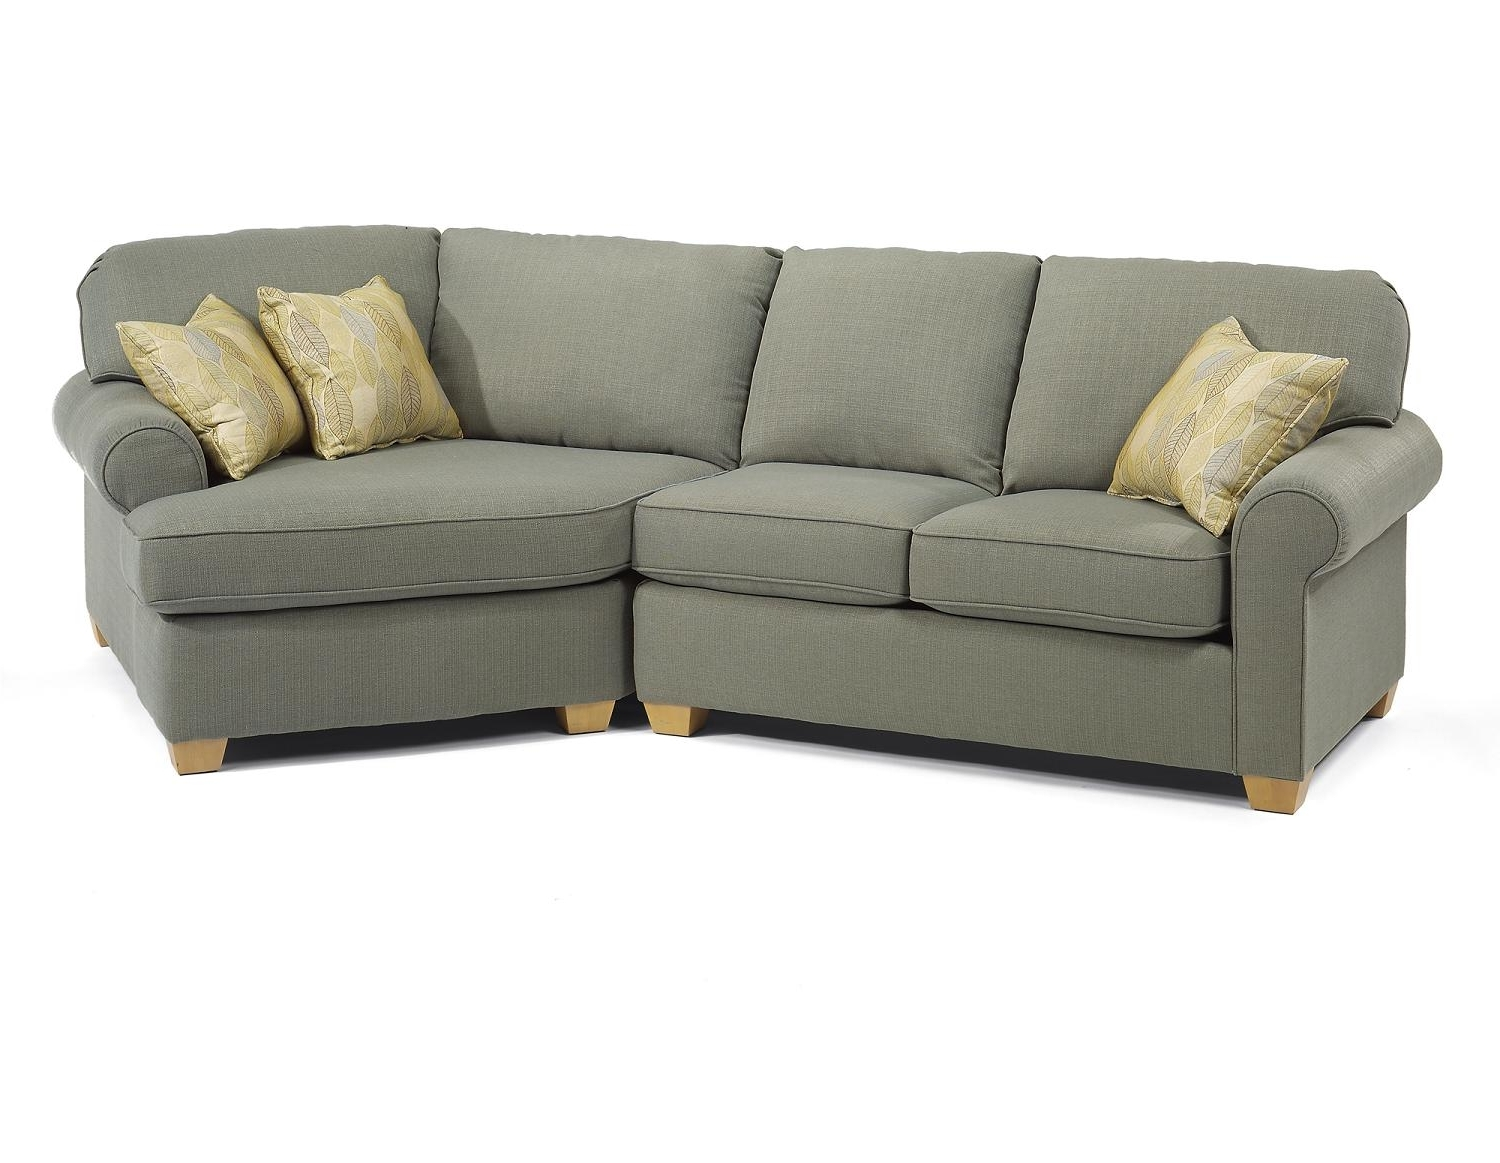 Inspiring Ideas And Select The Sectional Sofas With Chaise In Well Known Gold Sectional Sofas (View 15 of 20)